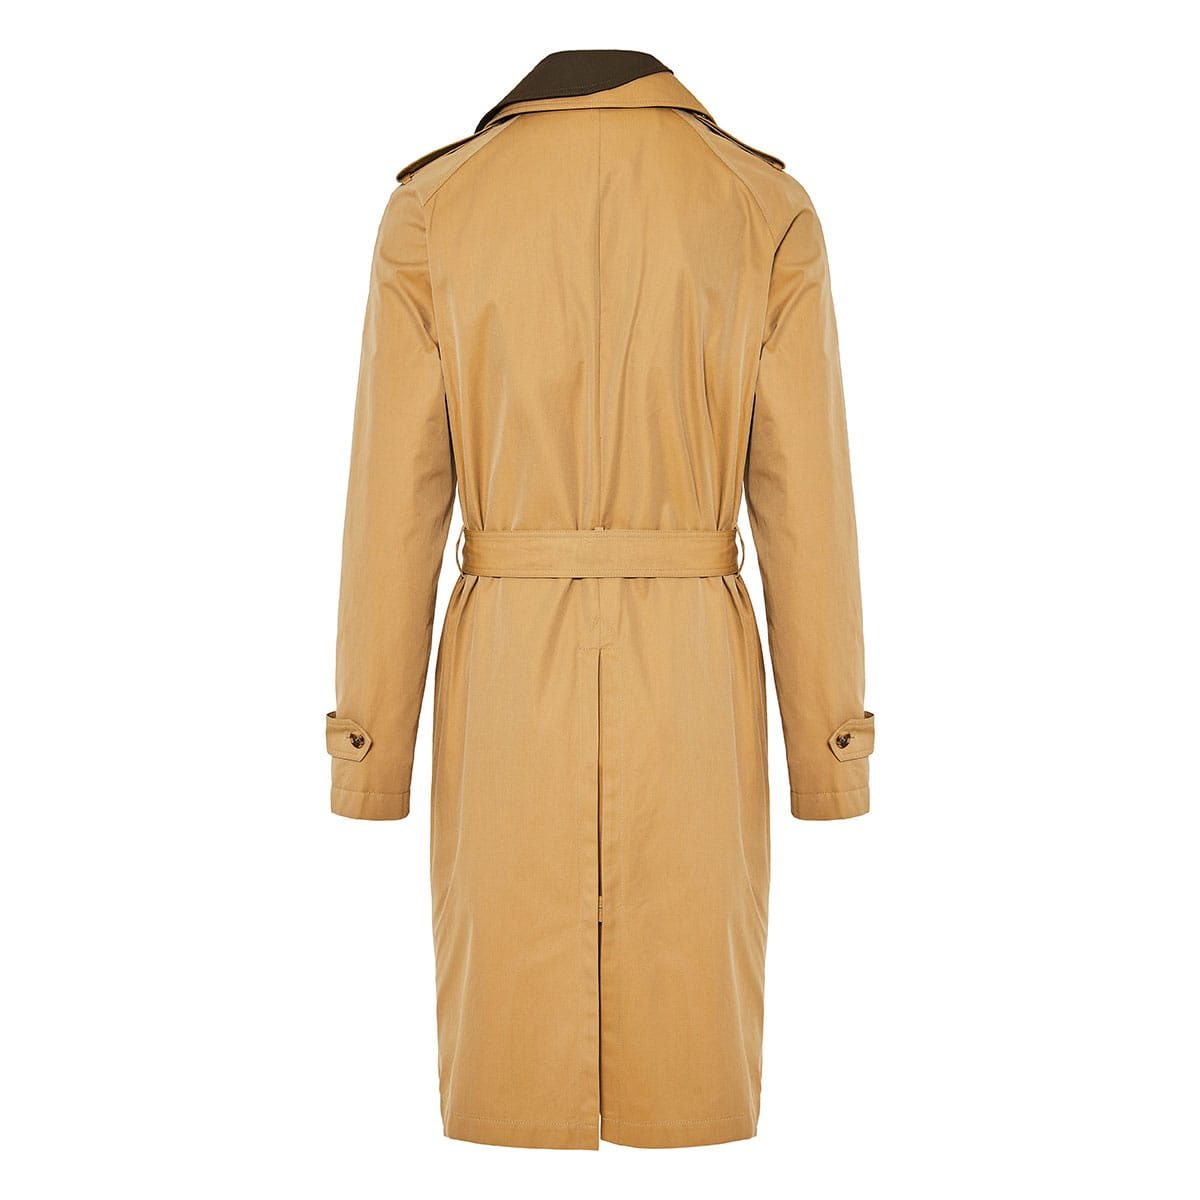 Two-tone asymmetric trench coat